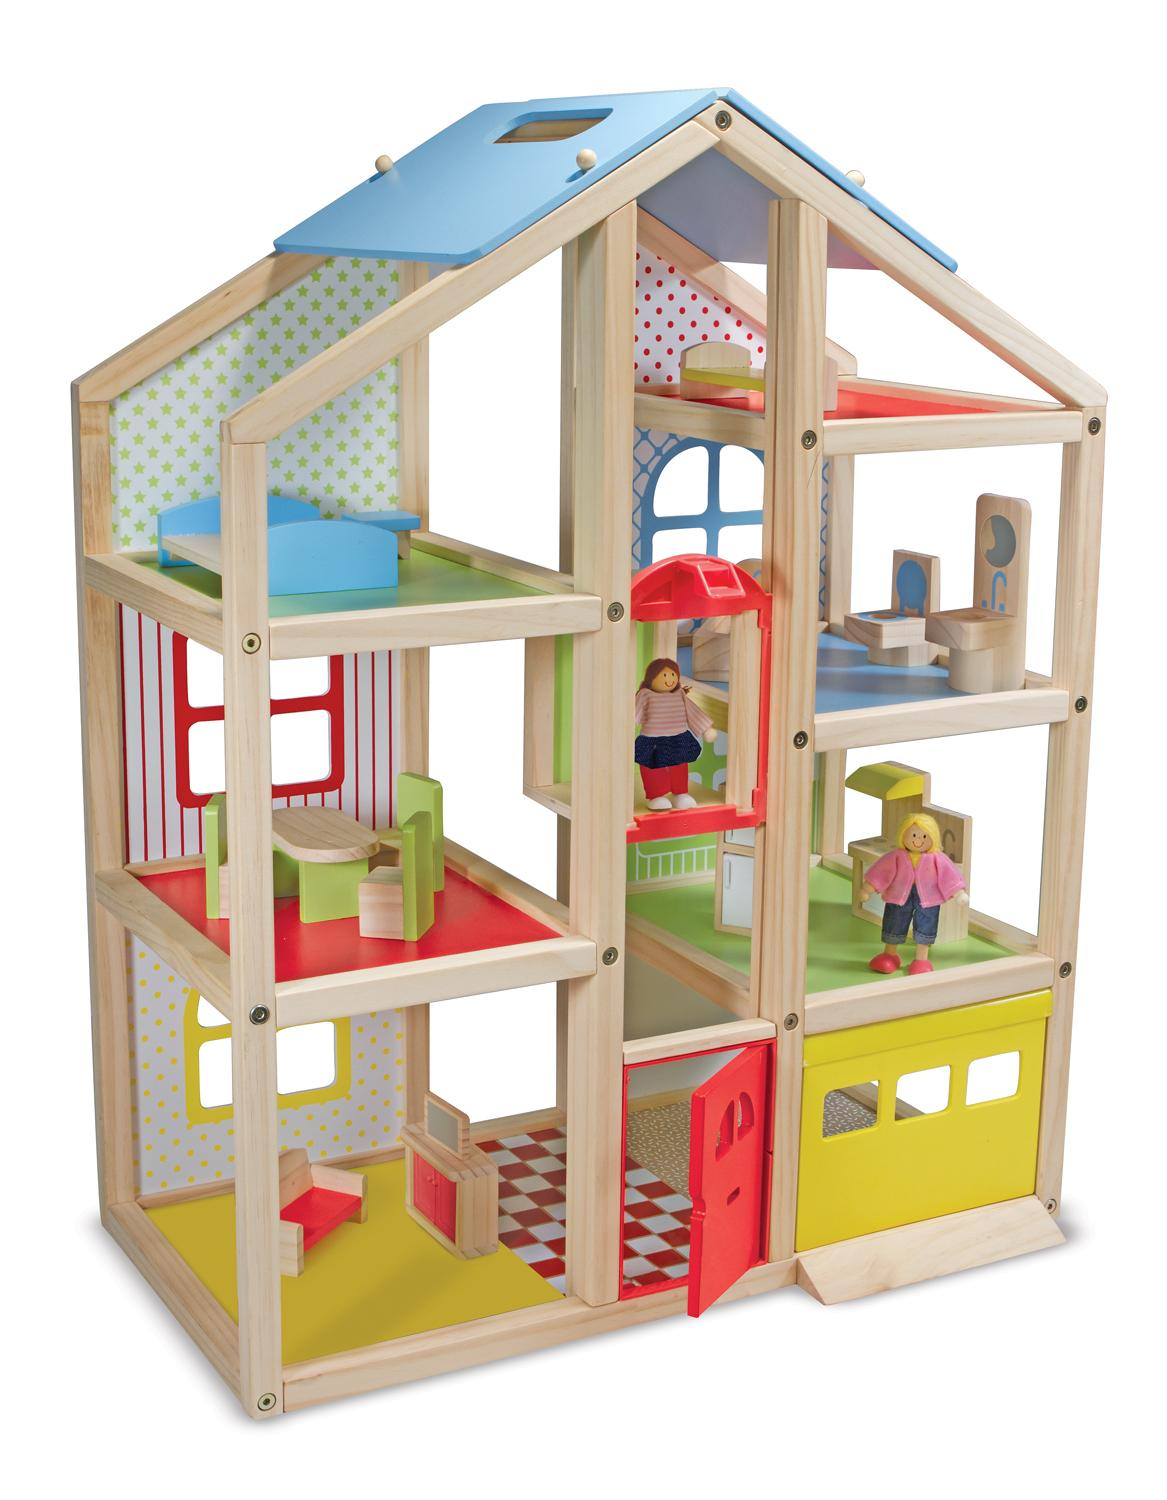 Barbie,doll House, Townhouse,toy For 3 Year Old Girl,boy